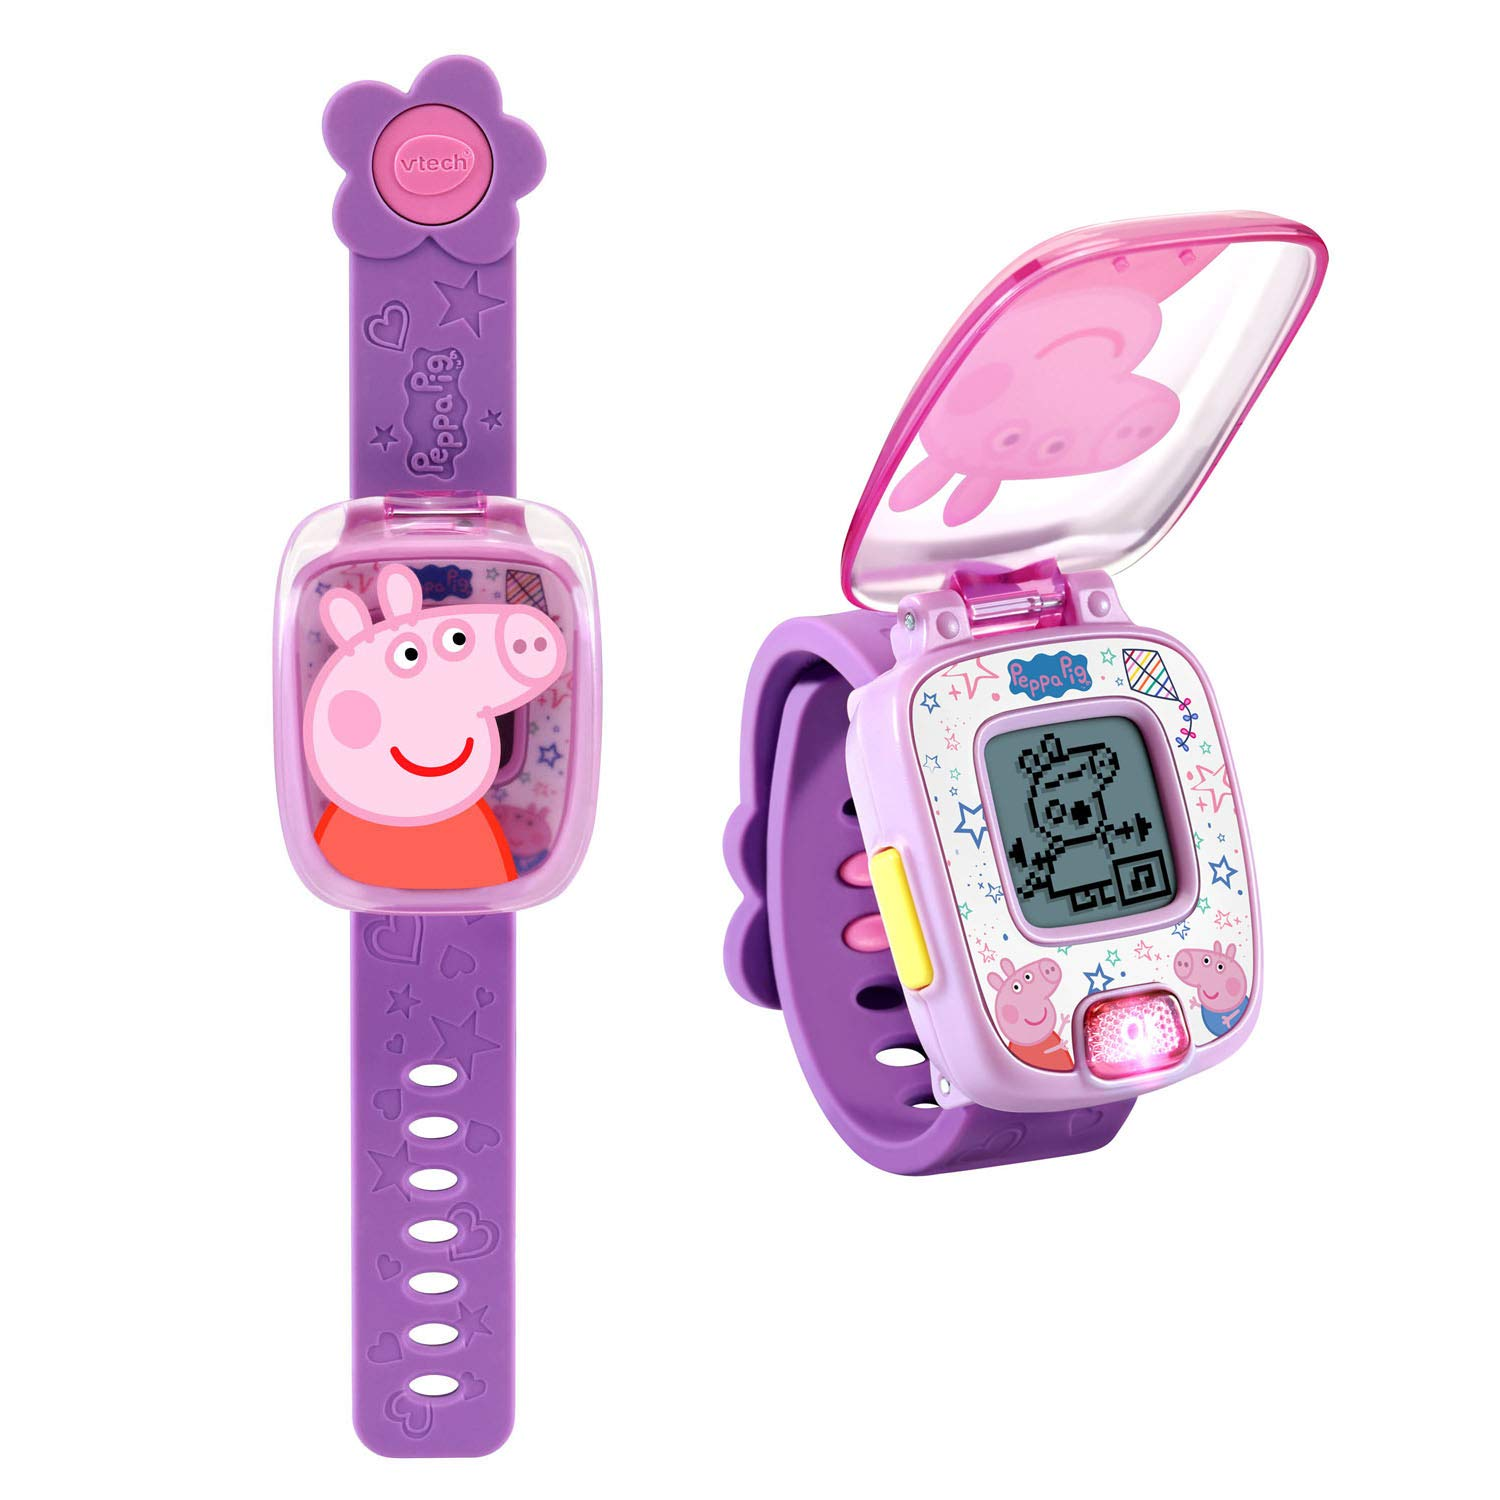 VTech Peppa Pig Learning Watch, Blue, Great Gift for Kids, Toddlers, Toy for Boys and Girls, Ages 3, 4, 5, 6